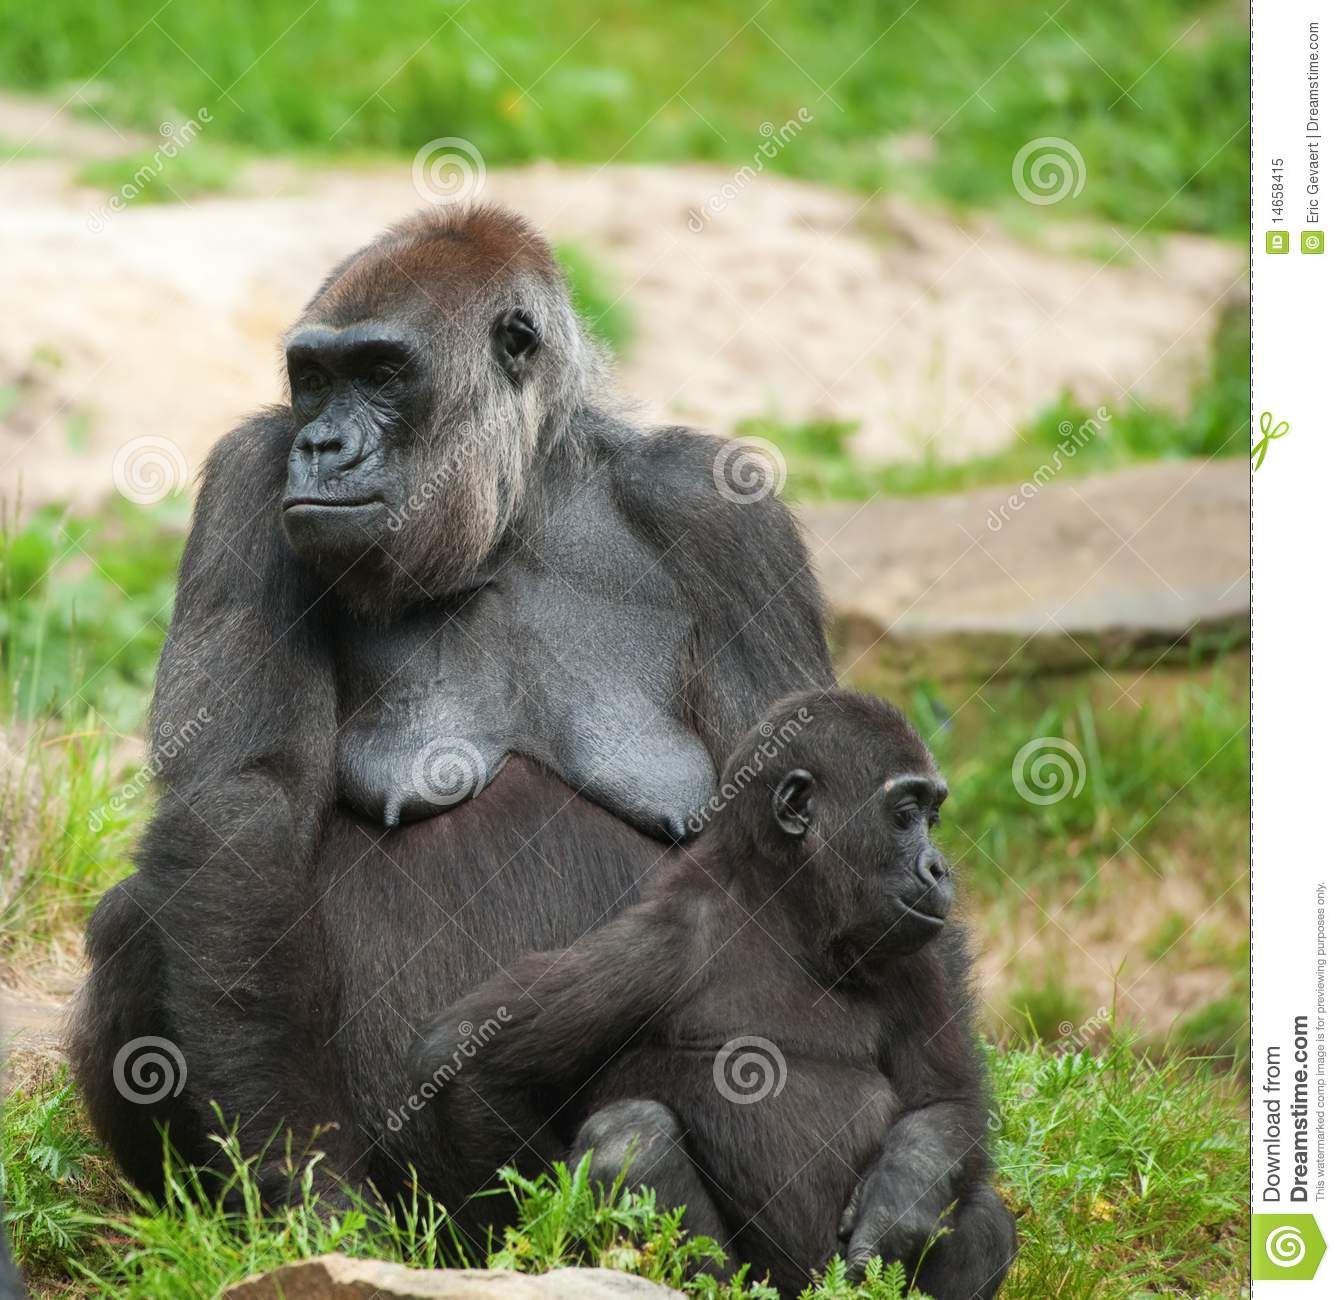 Cute baby gorilla - photo#24